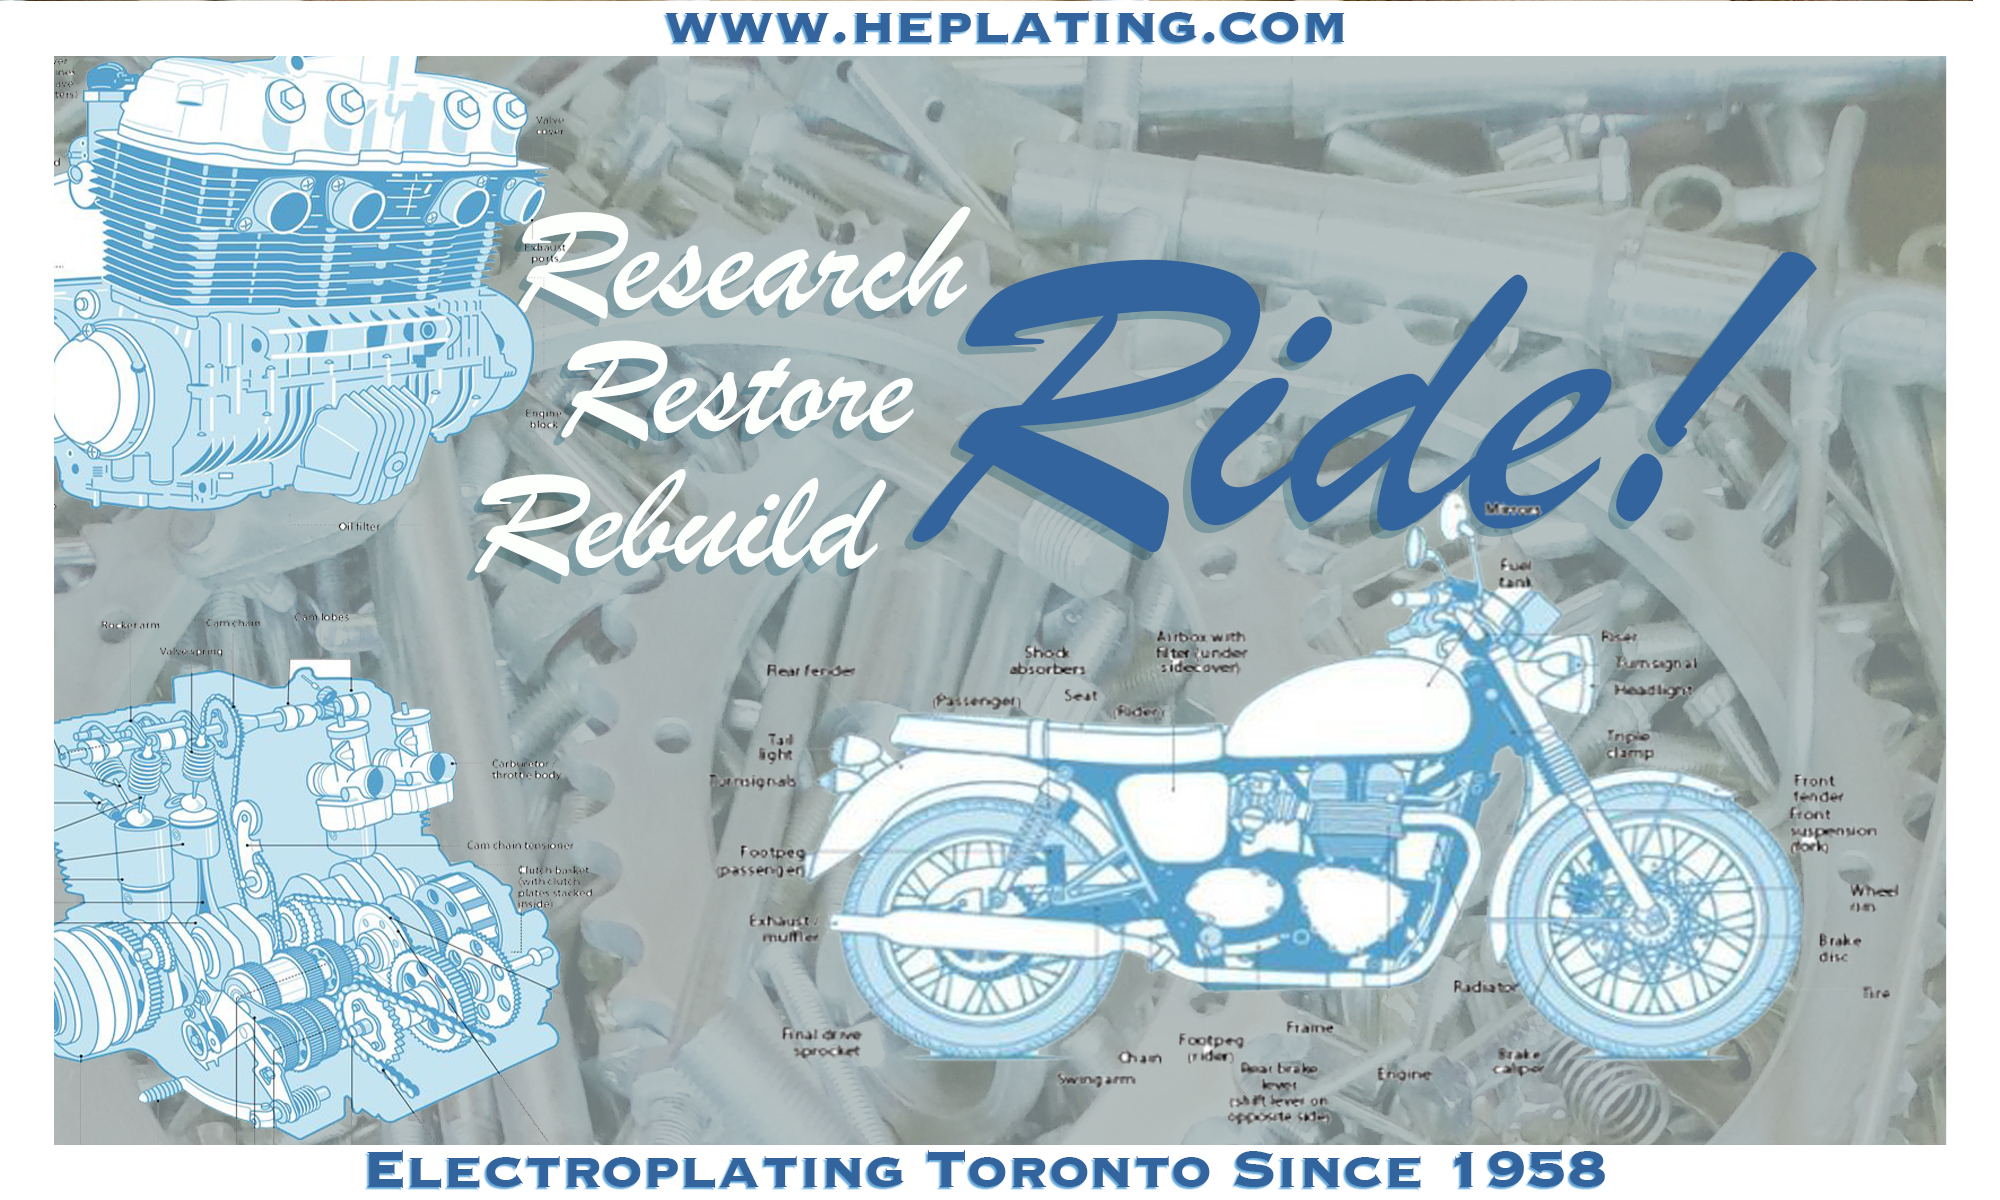 small electroplating orders for bike motorcycle automotive restorations